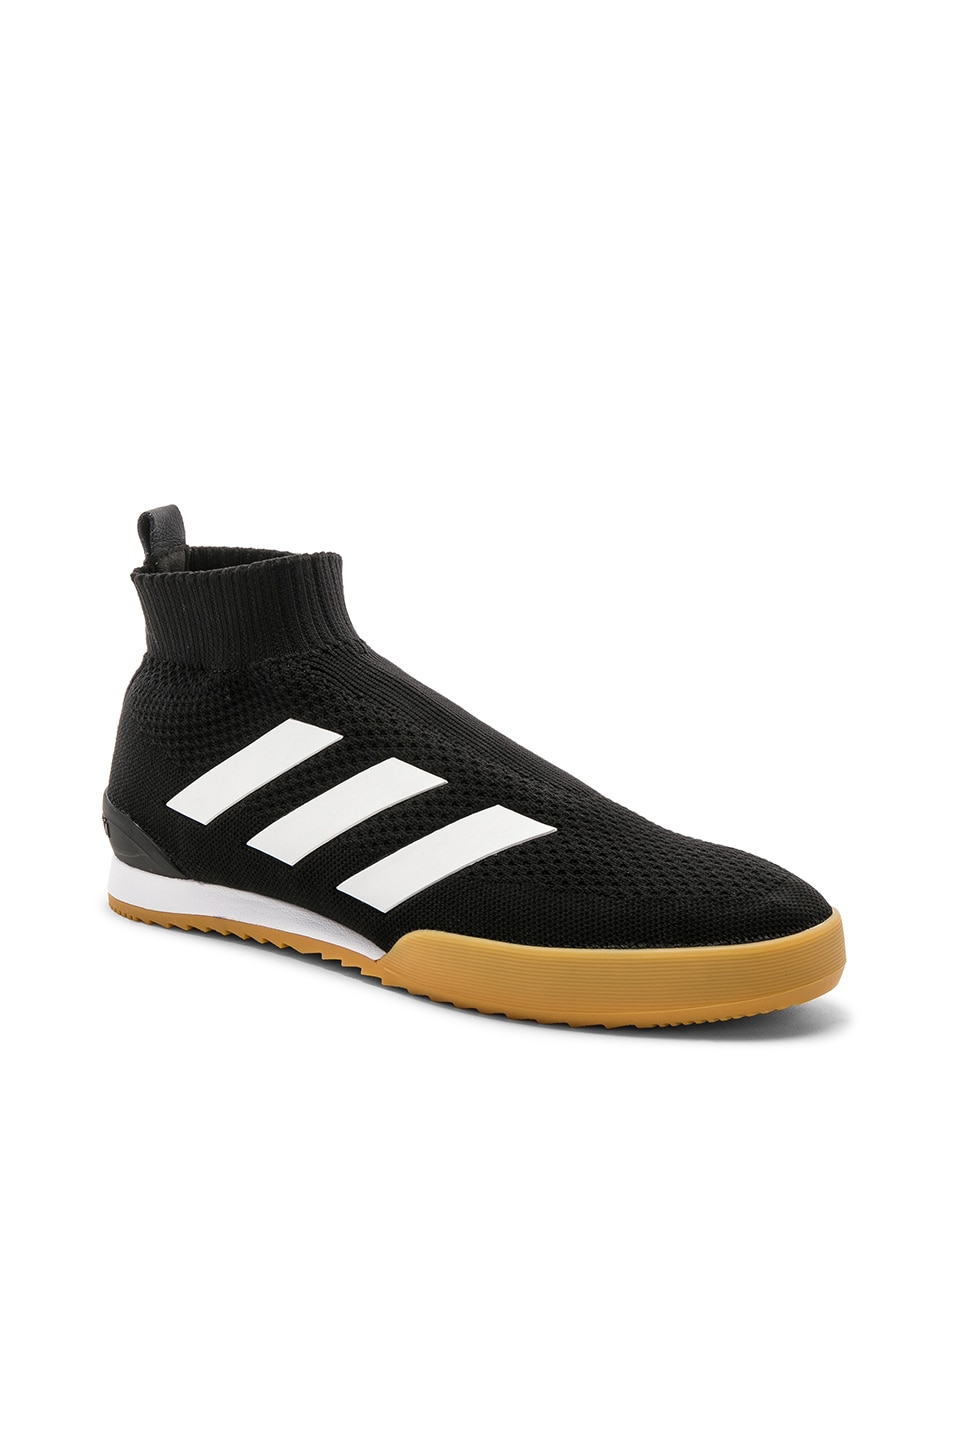 the latest 5af45 d6294 Image 1 of Gosha Rubchinskiy x adidas Ace 16+ Super Shoes in Black